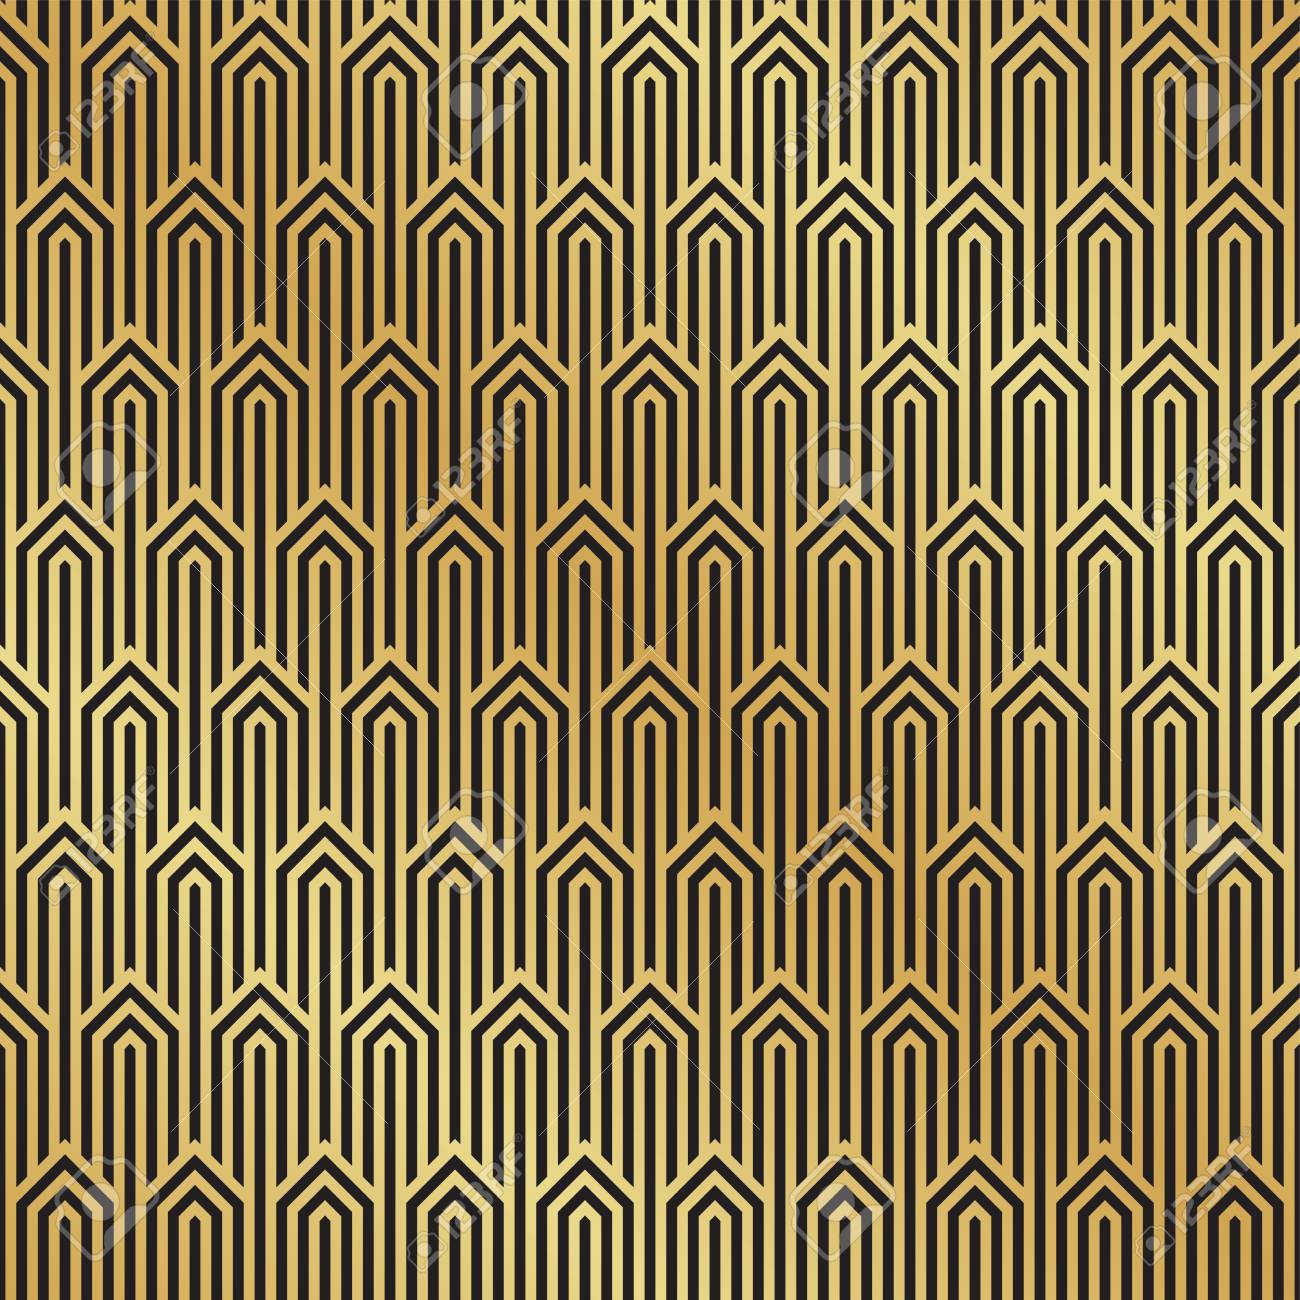 Seamless black and gold Art Deco pattern background. Art Deco..